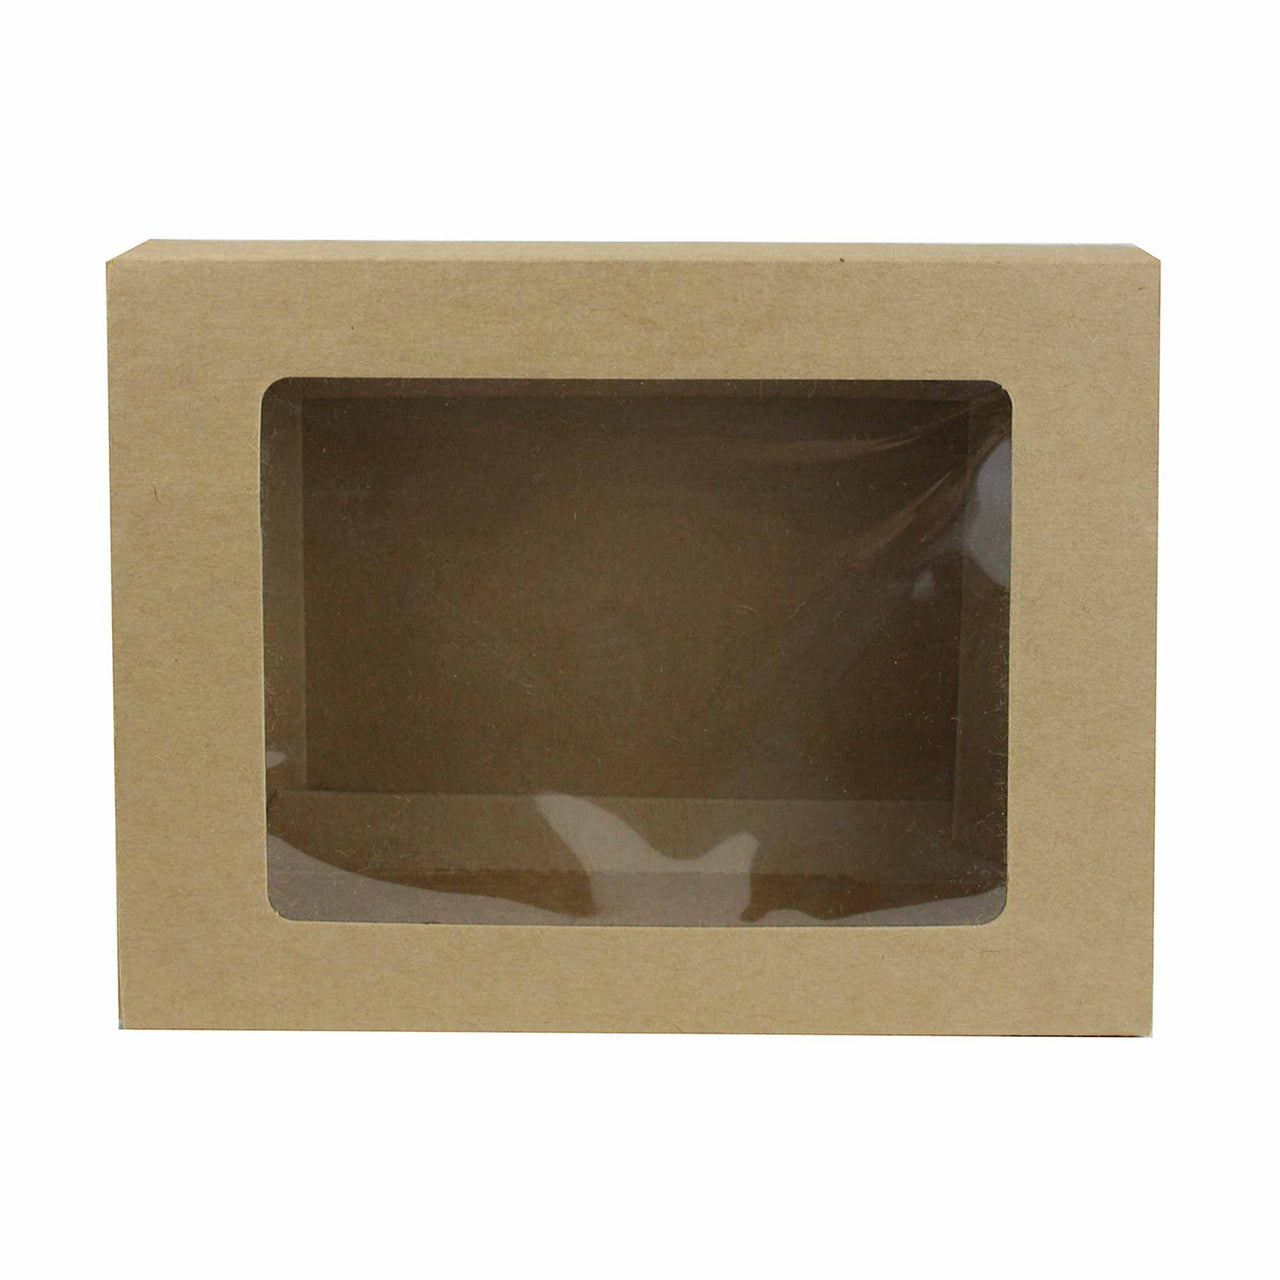 Rectangle Brown with Plastic Window Gift Box - Pack of 10